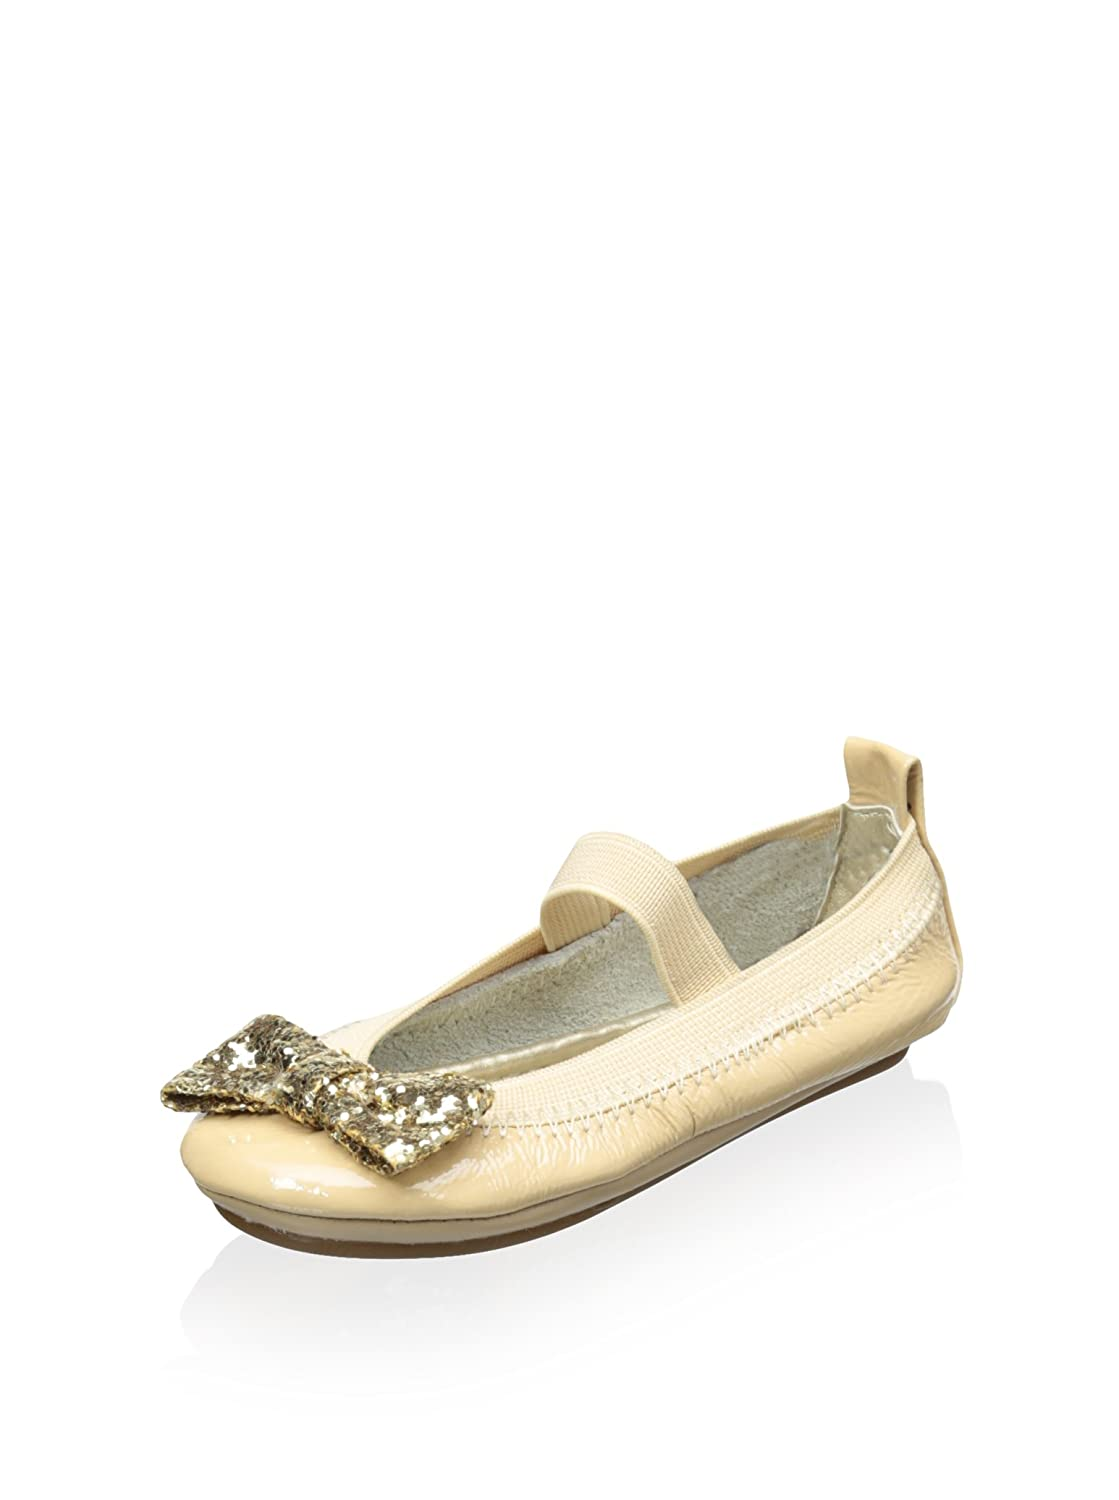 Yosi Samra Patent Leather Bendable Ballet Flat with Gold Chunky Glitter Bow 6C//Infant